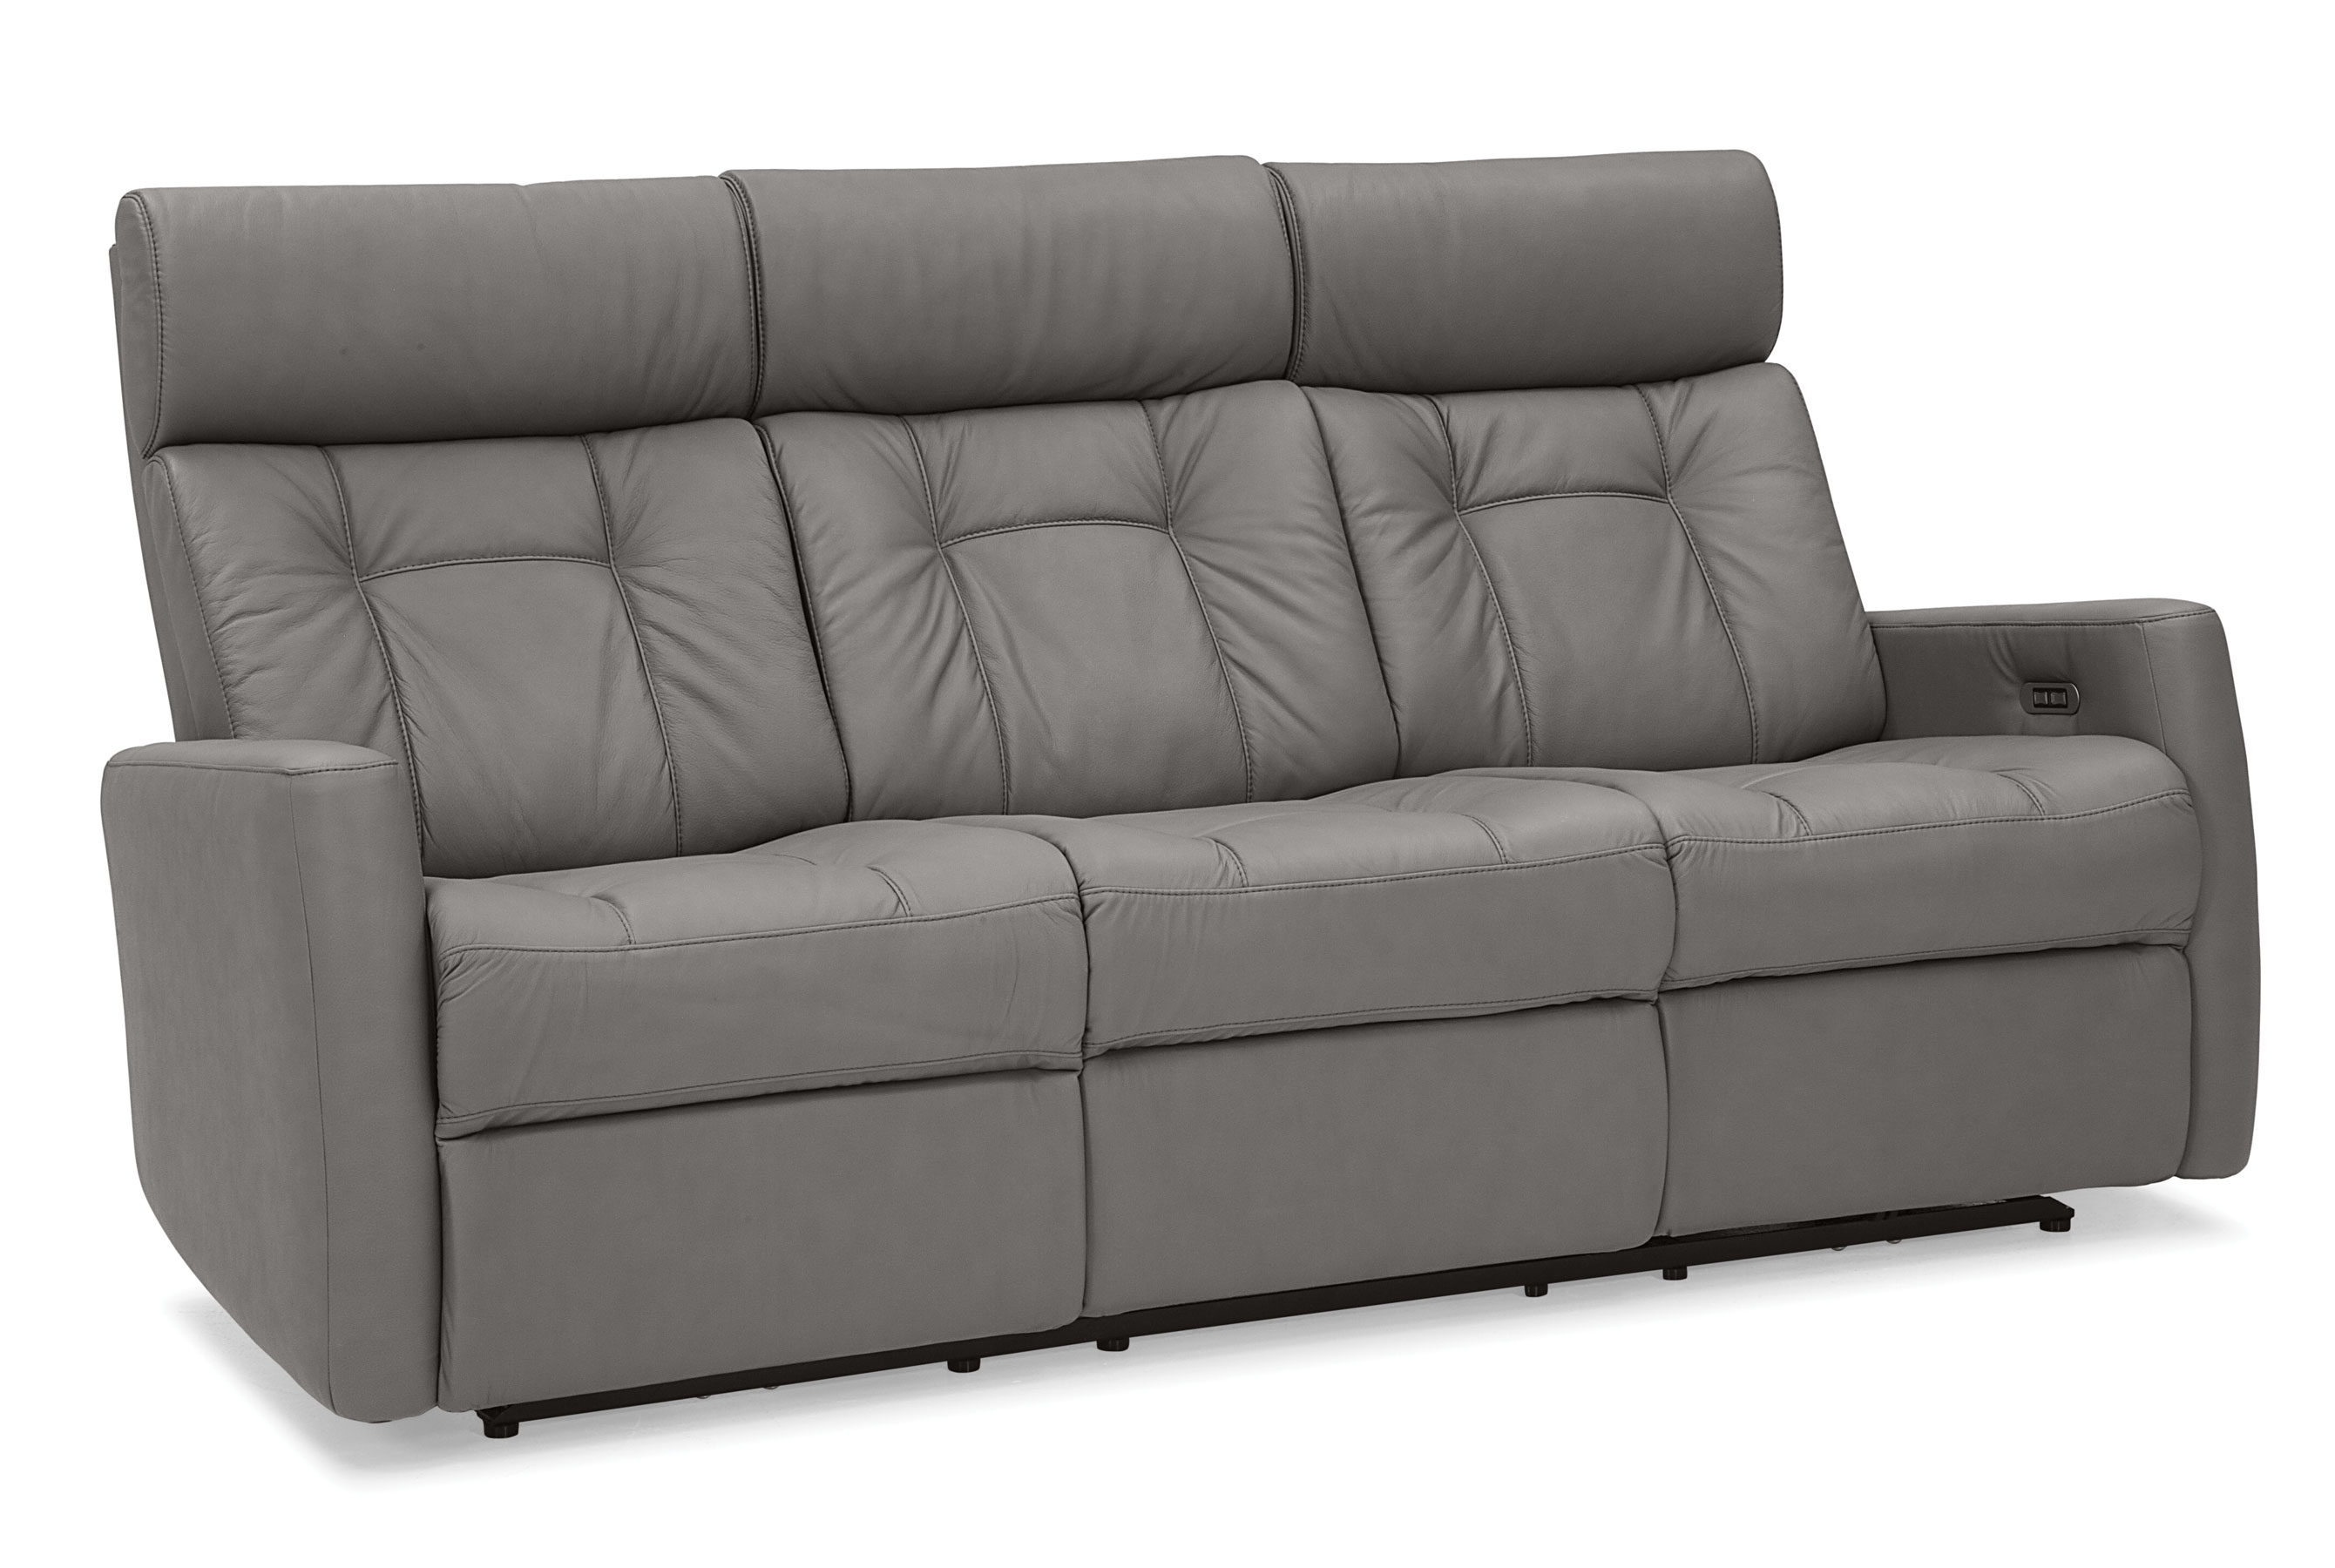 West Coast Ii 42204 Recline Sofas And Sectionals